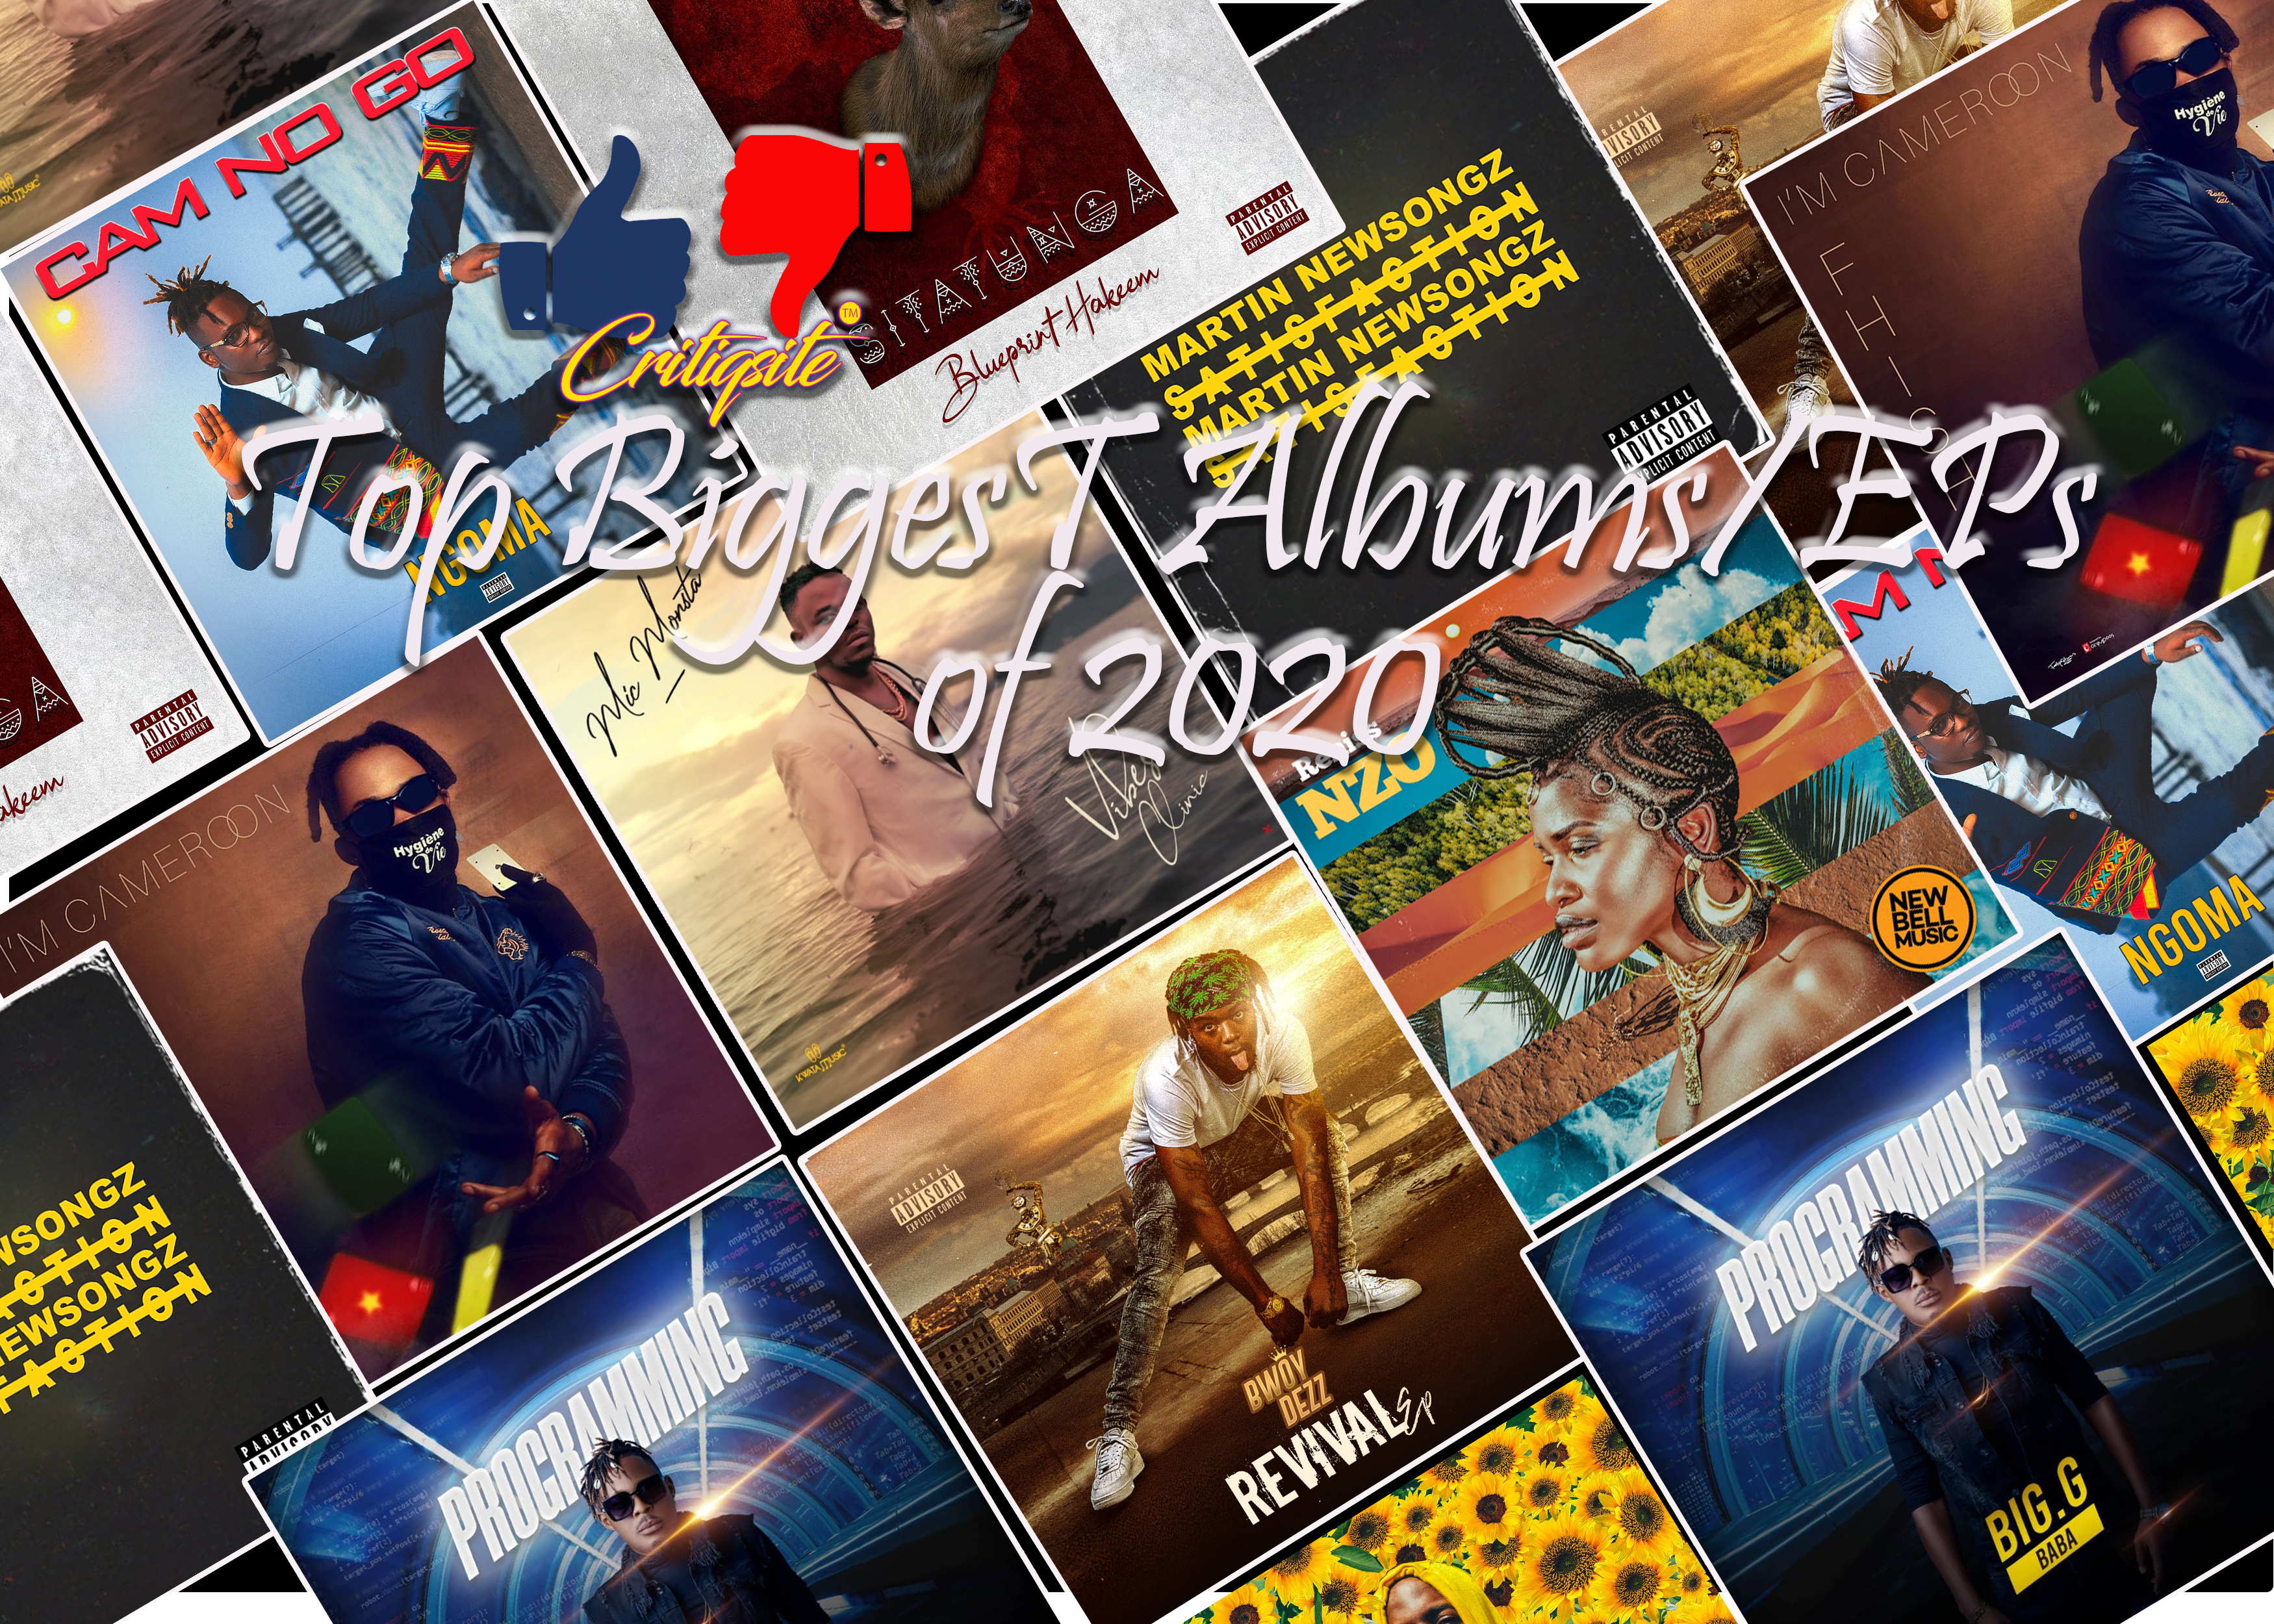 The Biggest Albums/Eps of 2020 from Cameroon